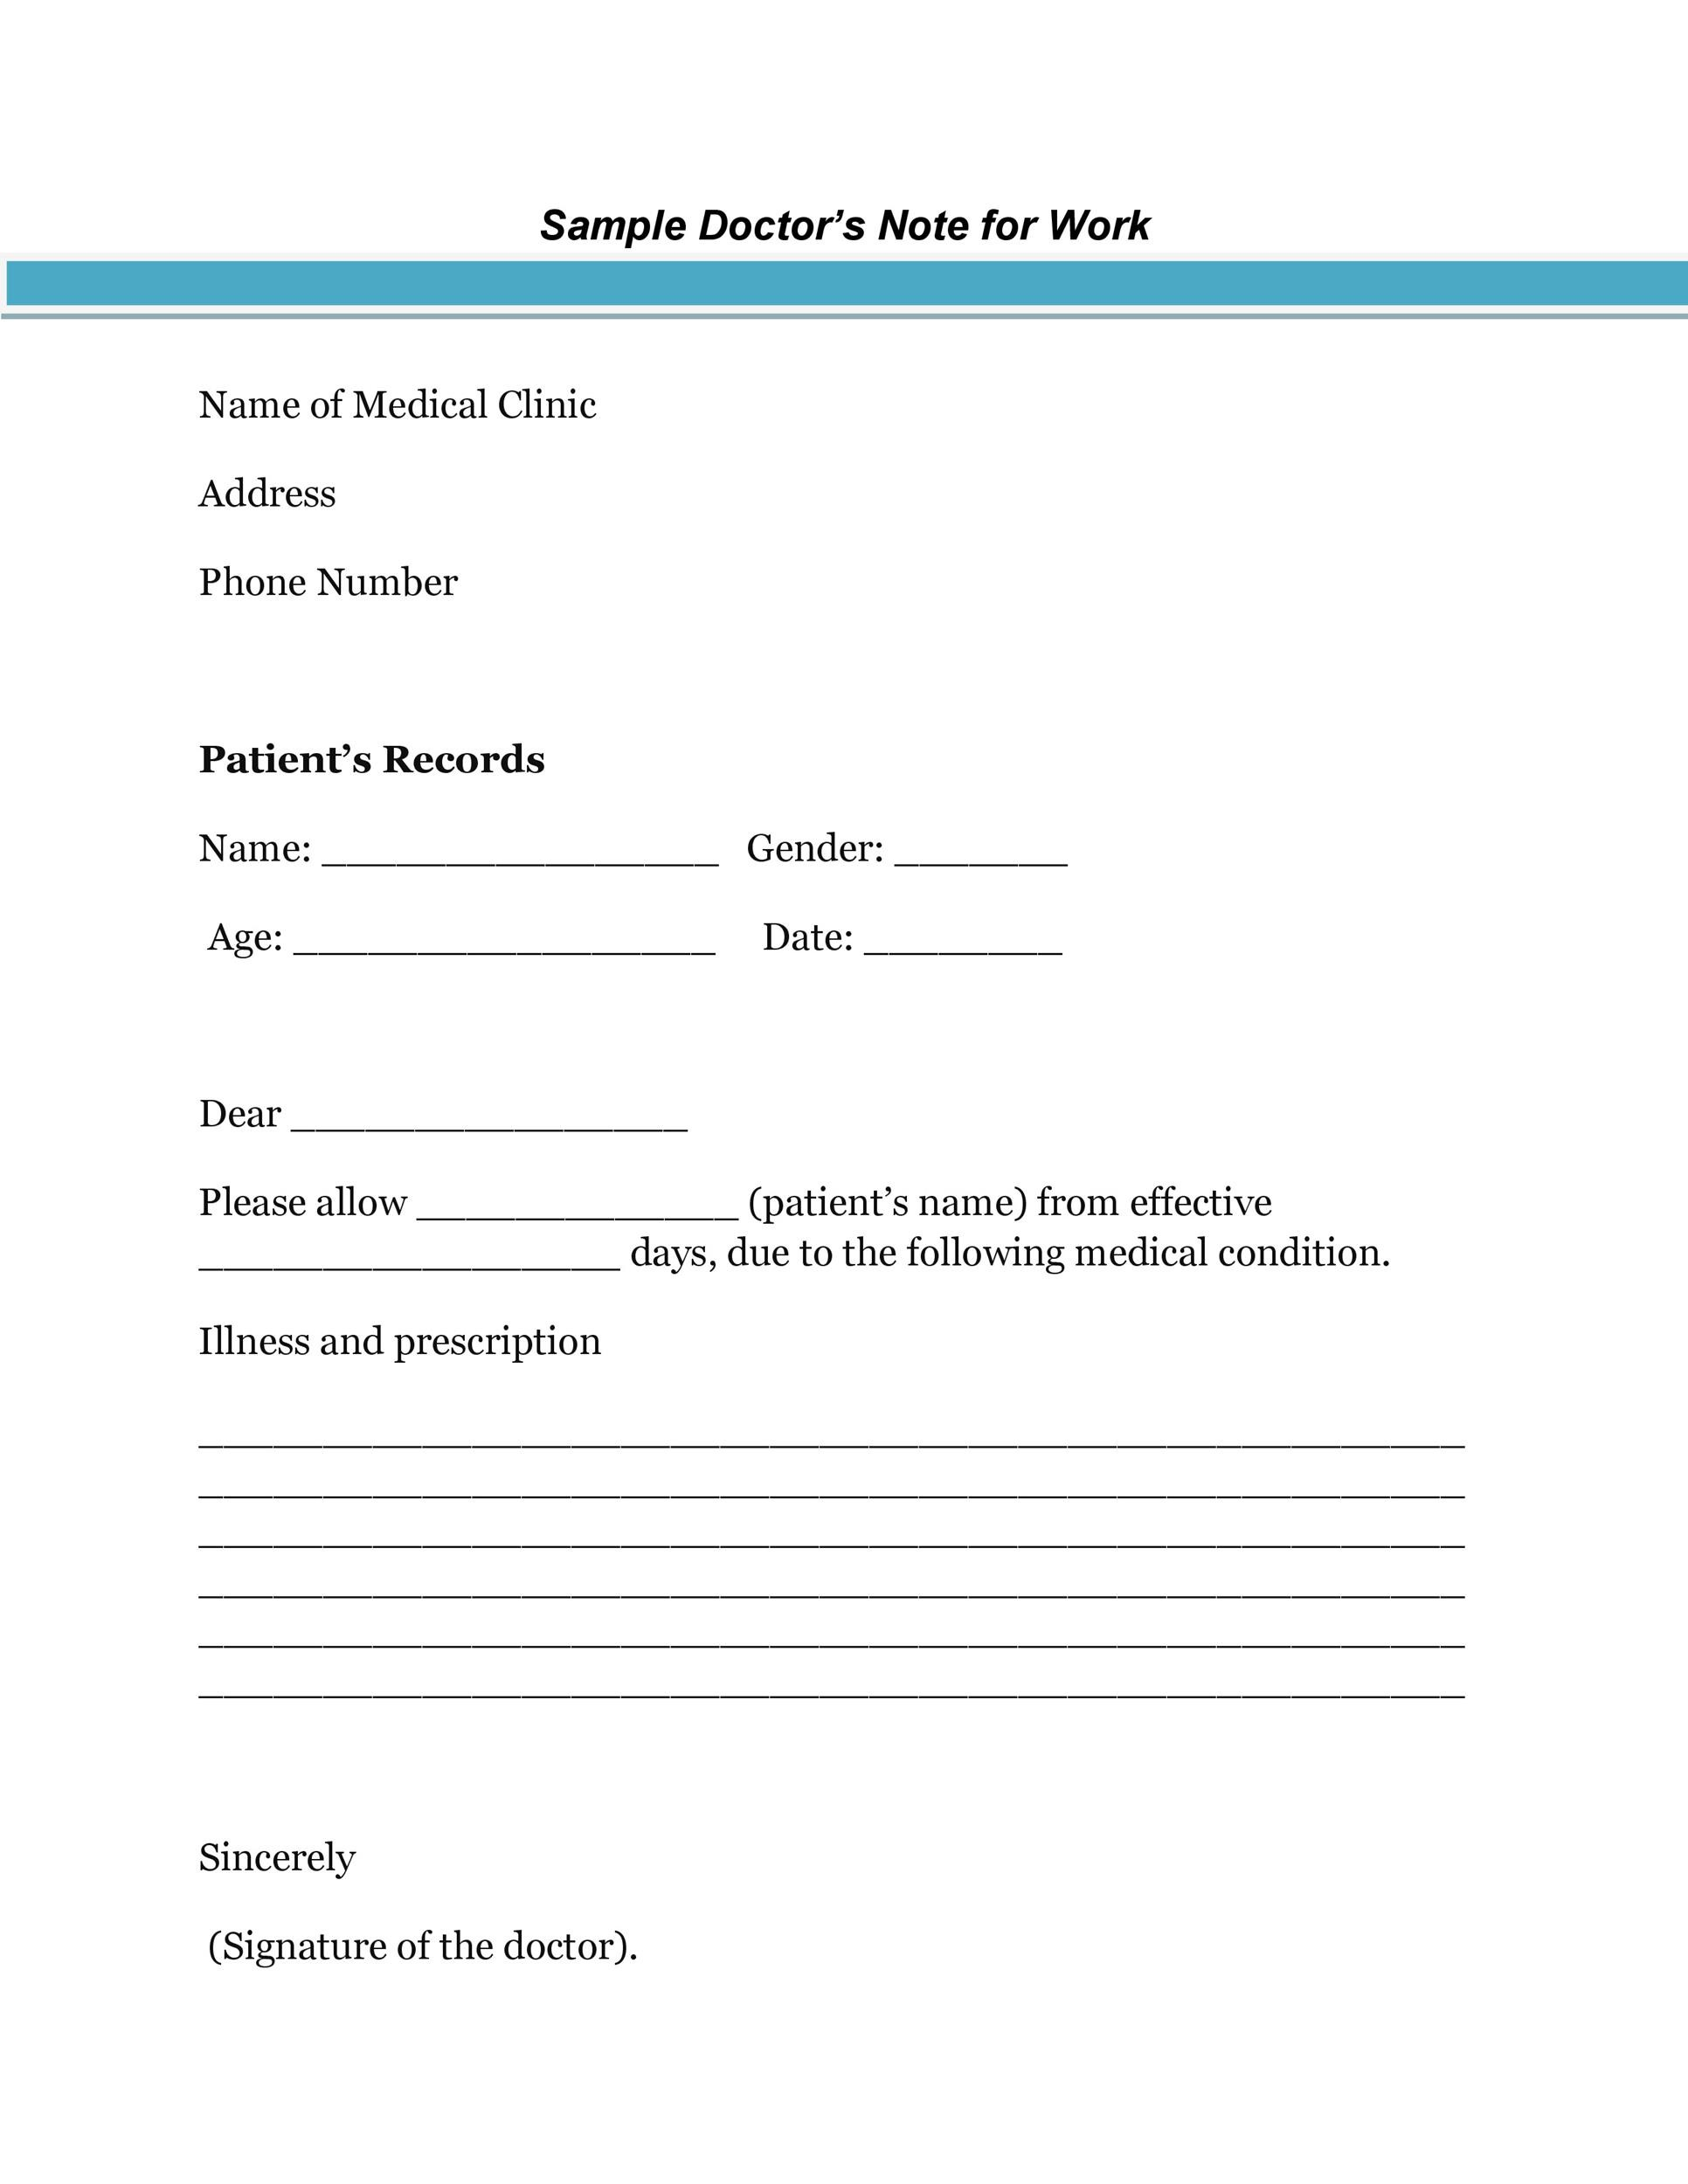 25 free doctor note excuse templates template lab printable bonus doctor notes template 05 altavistaventures Choice Image